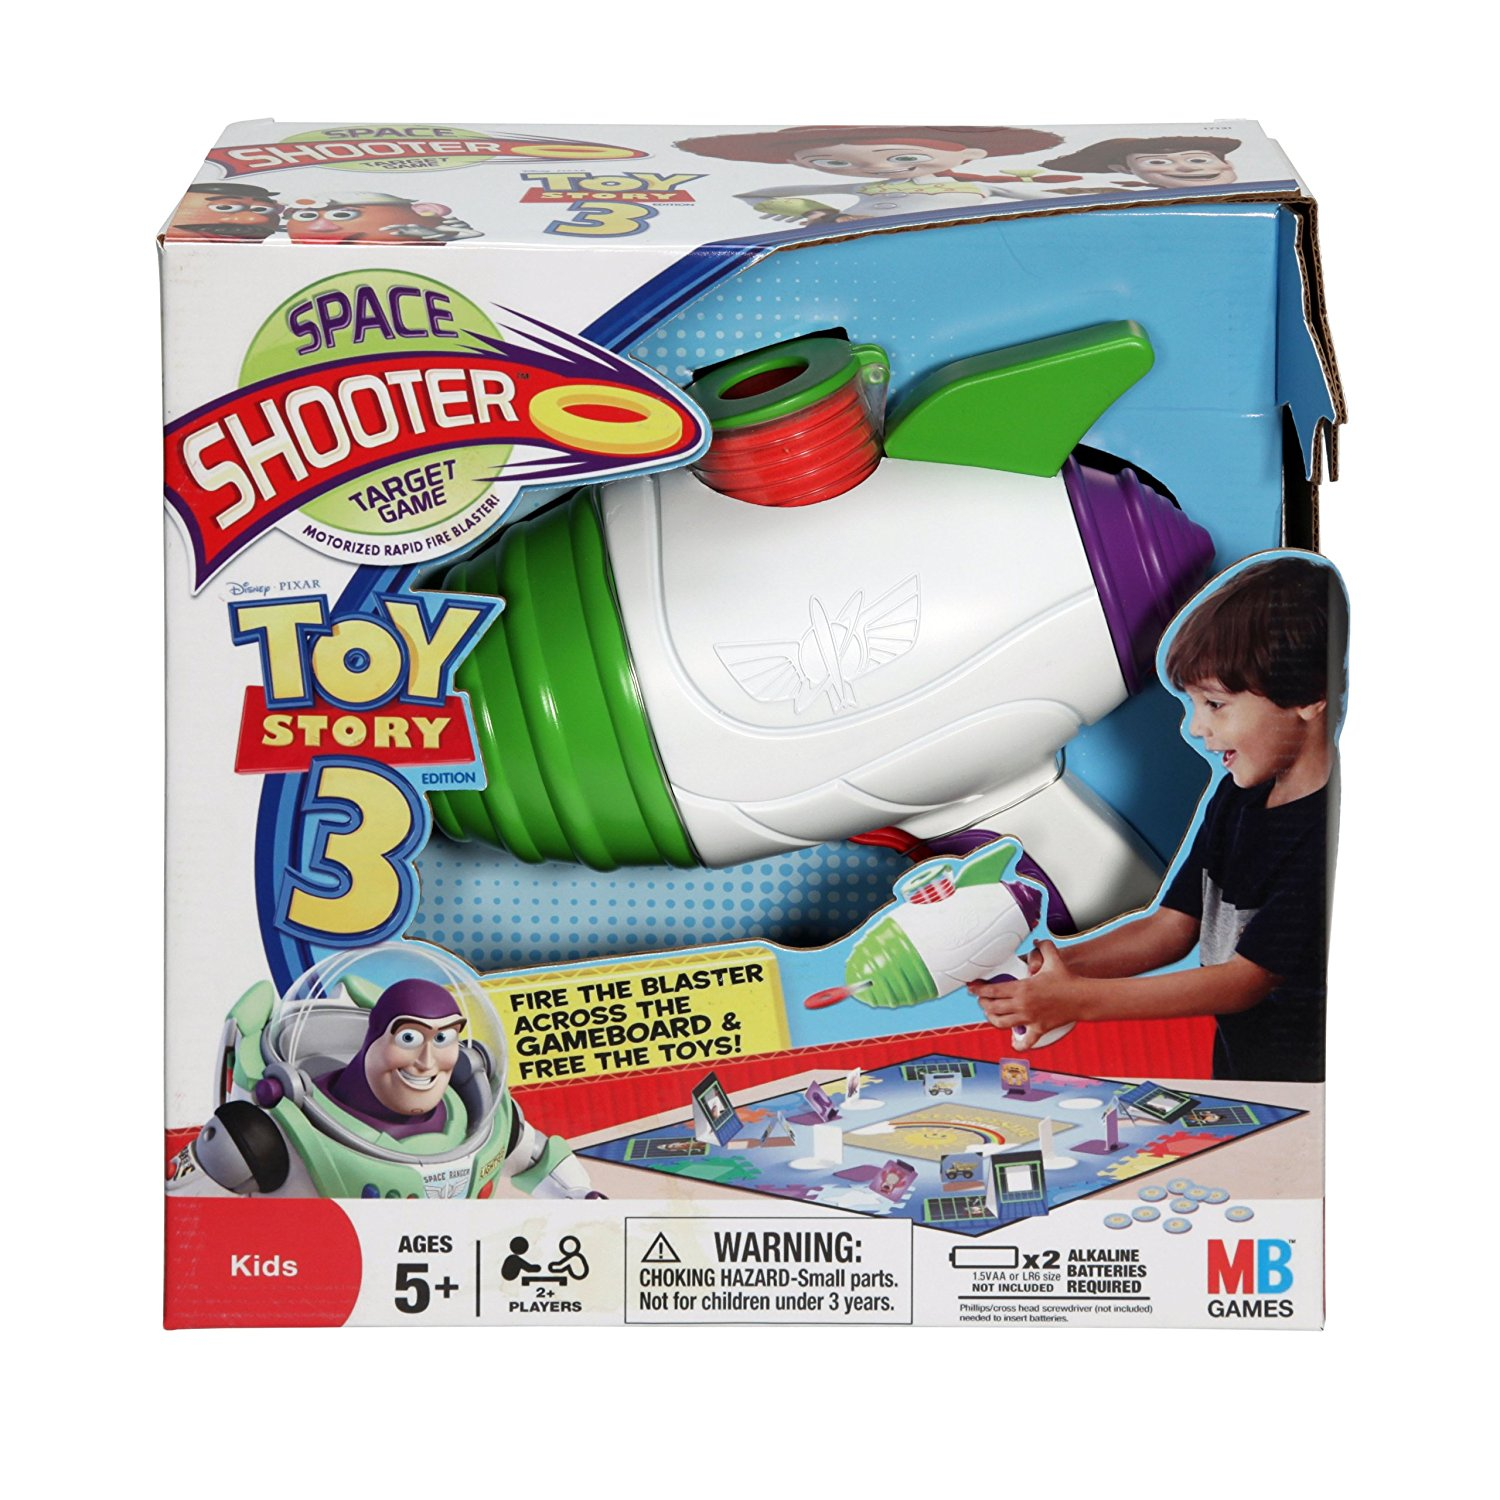 Toy Story 3 Buzz Lightyear Spaceshooter, Space Shooter Game where you can BE Buzz Light... by